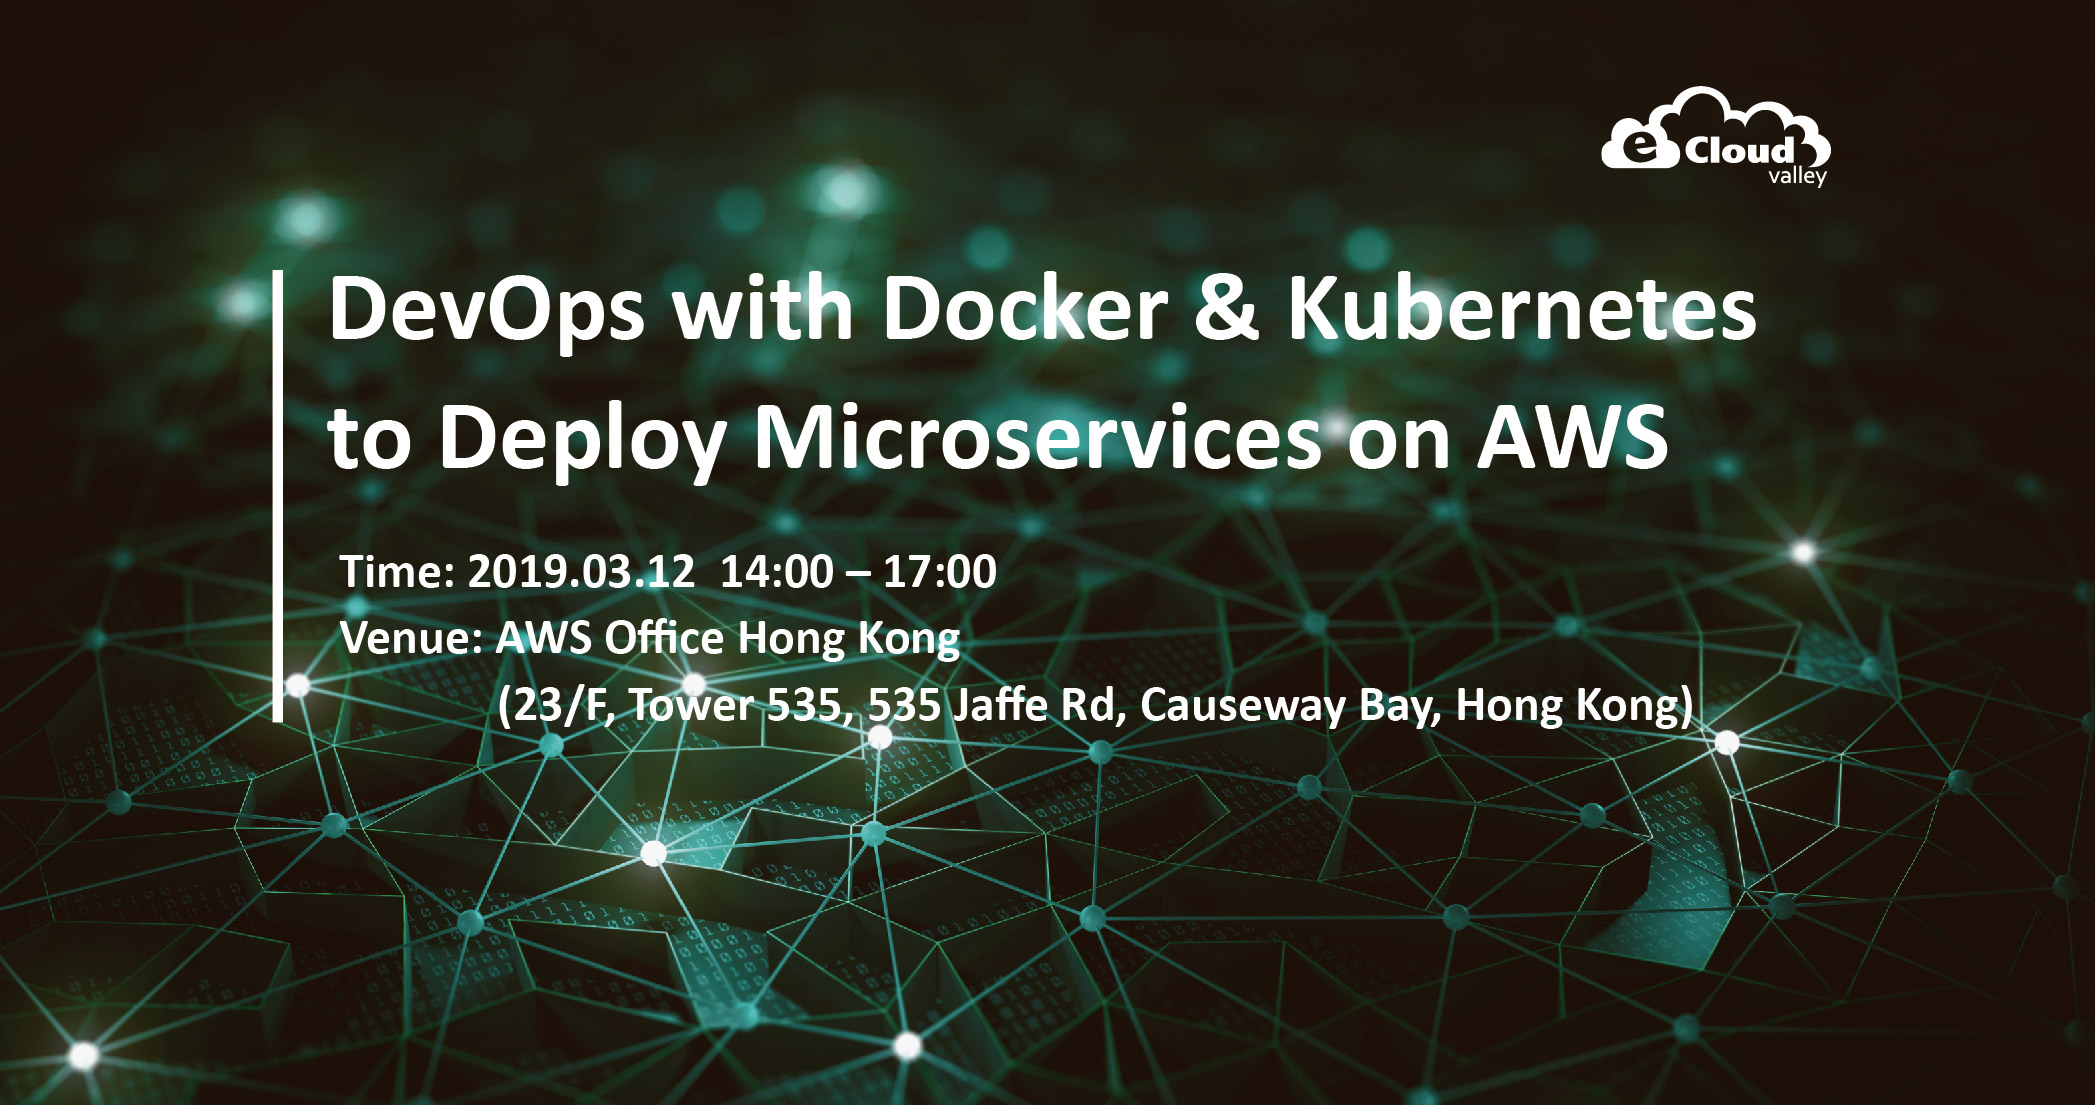 HK - DevOps with Docker containers & Kubernetes to deploy microservices on AWS